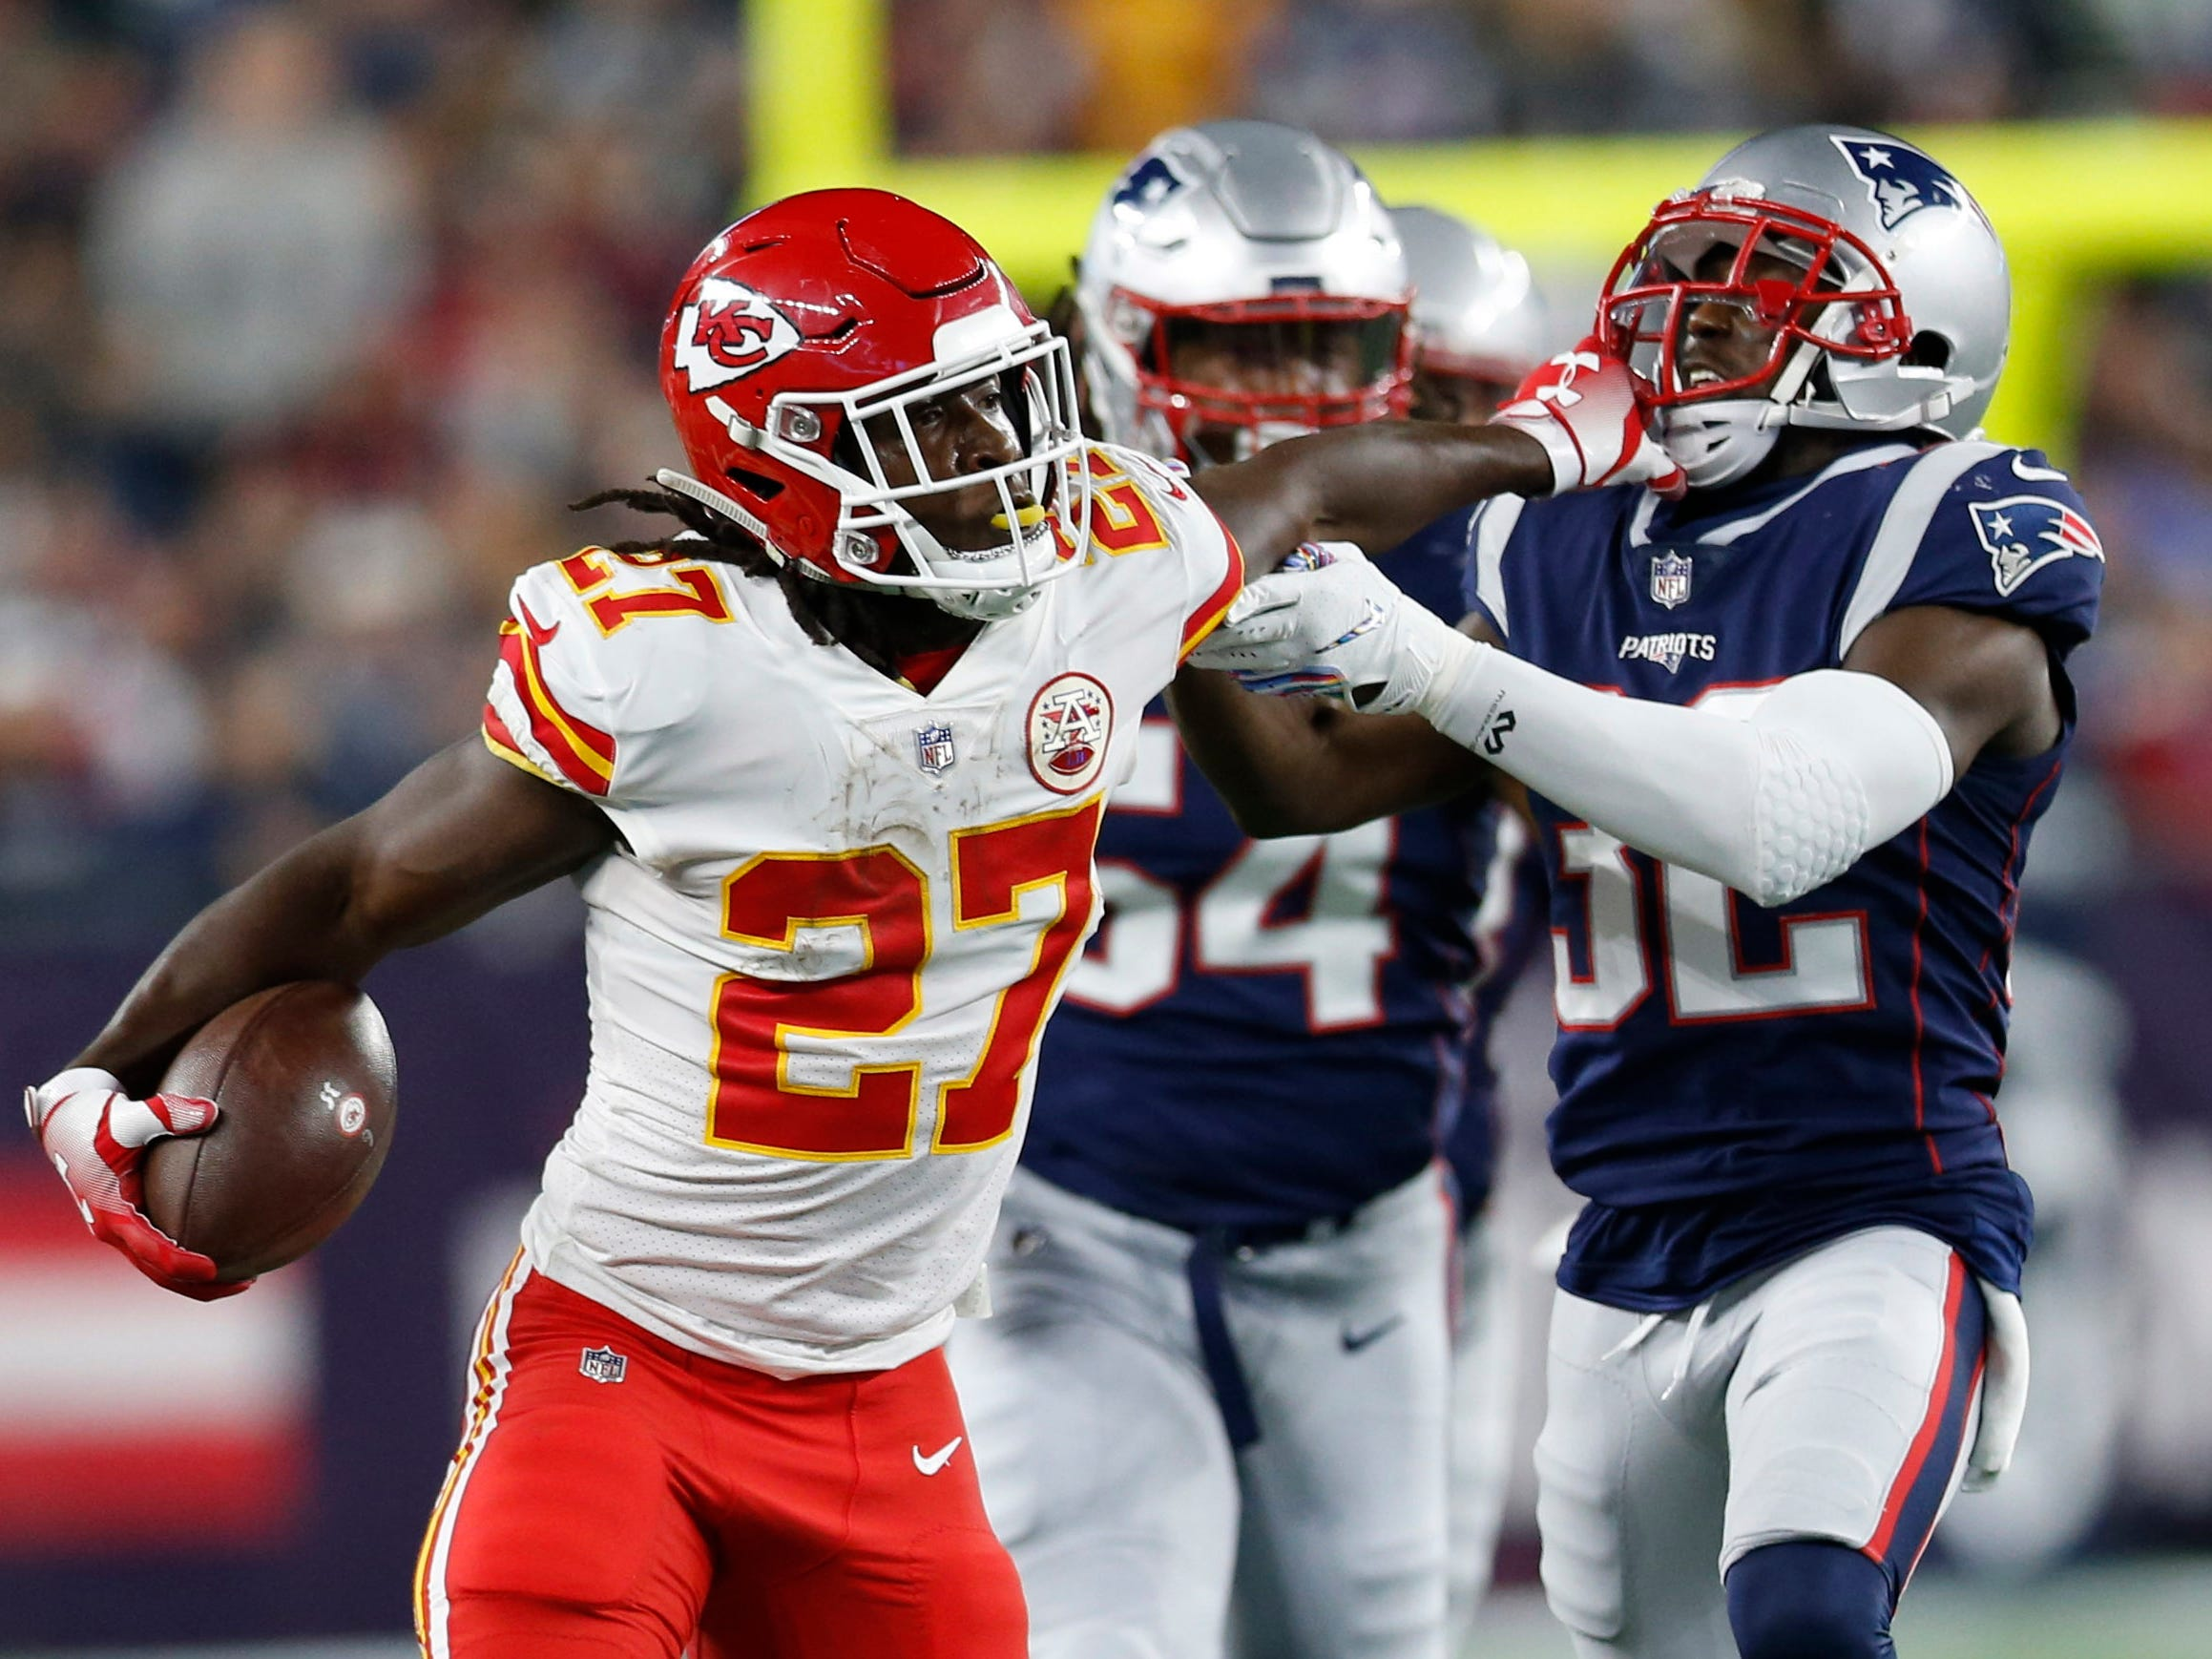 Kansas City Chiefs running back Kareem Hunt runs with the ball and tries to fend off the New England Patriots' Devin McCourty (32) during the second quarter at Gillette Stadium.